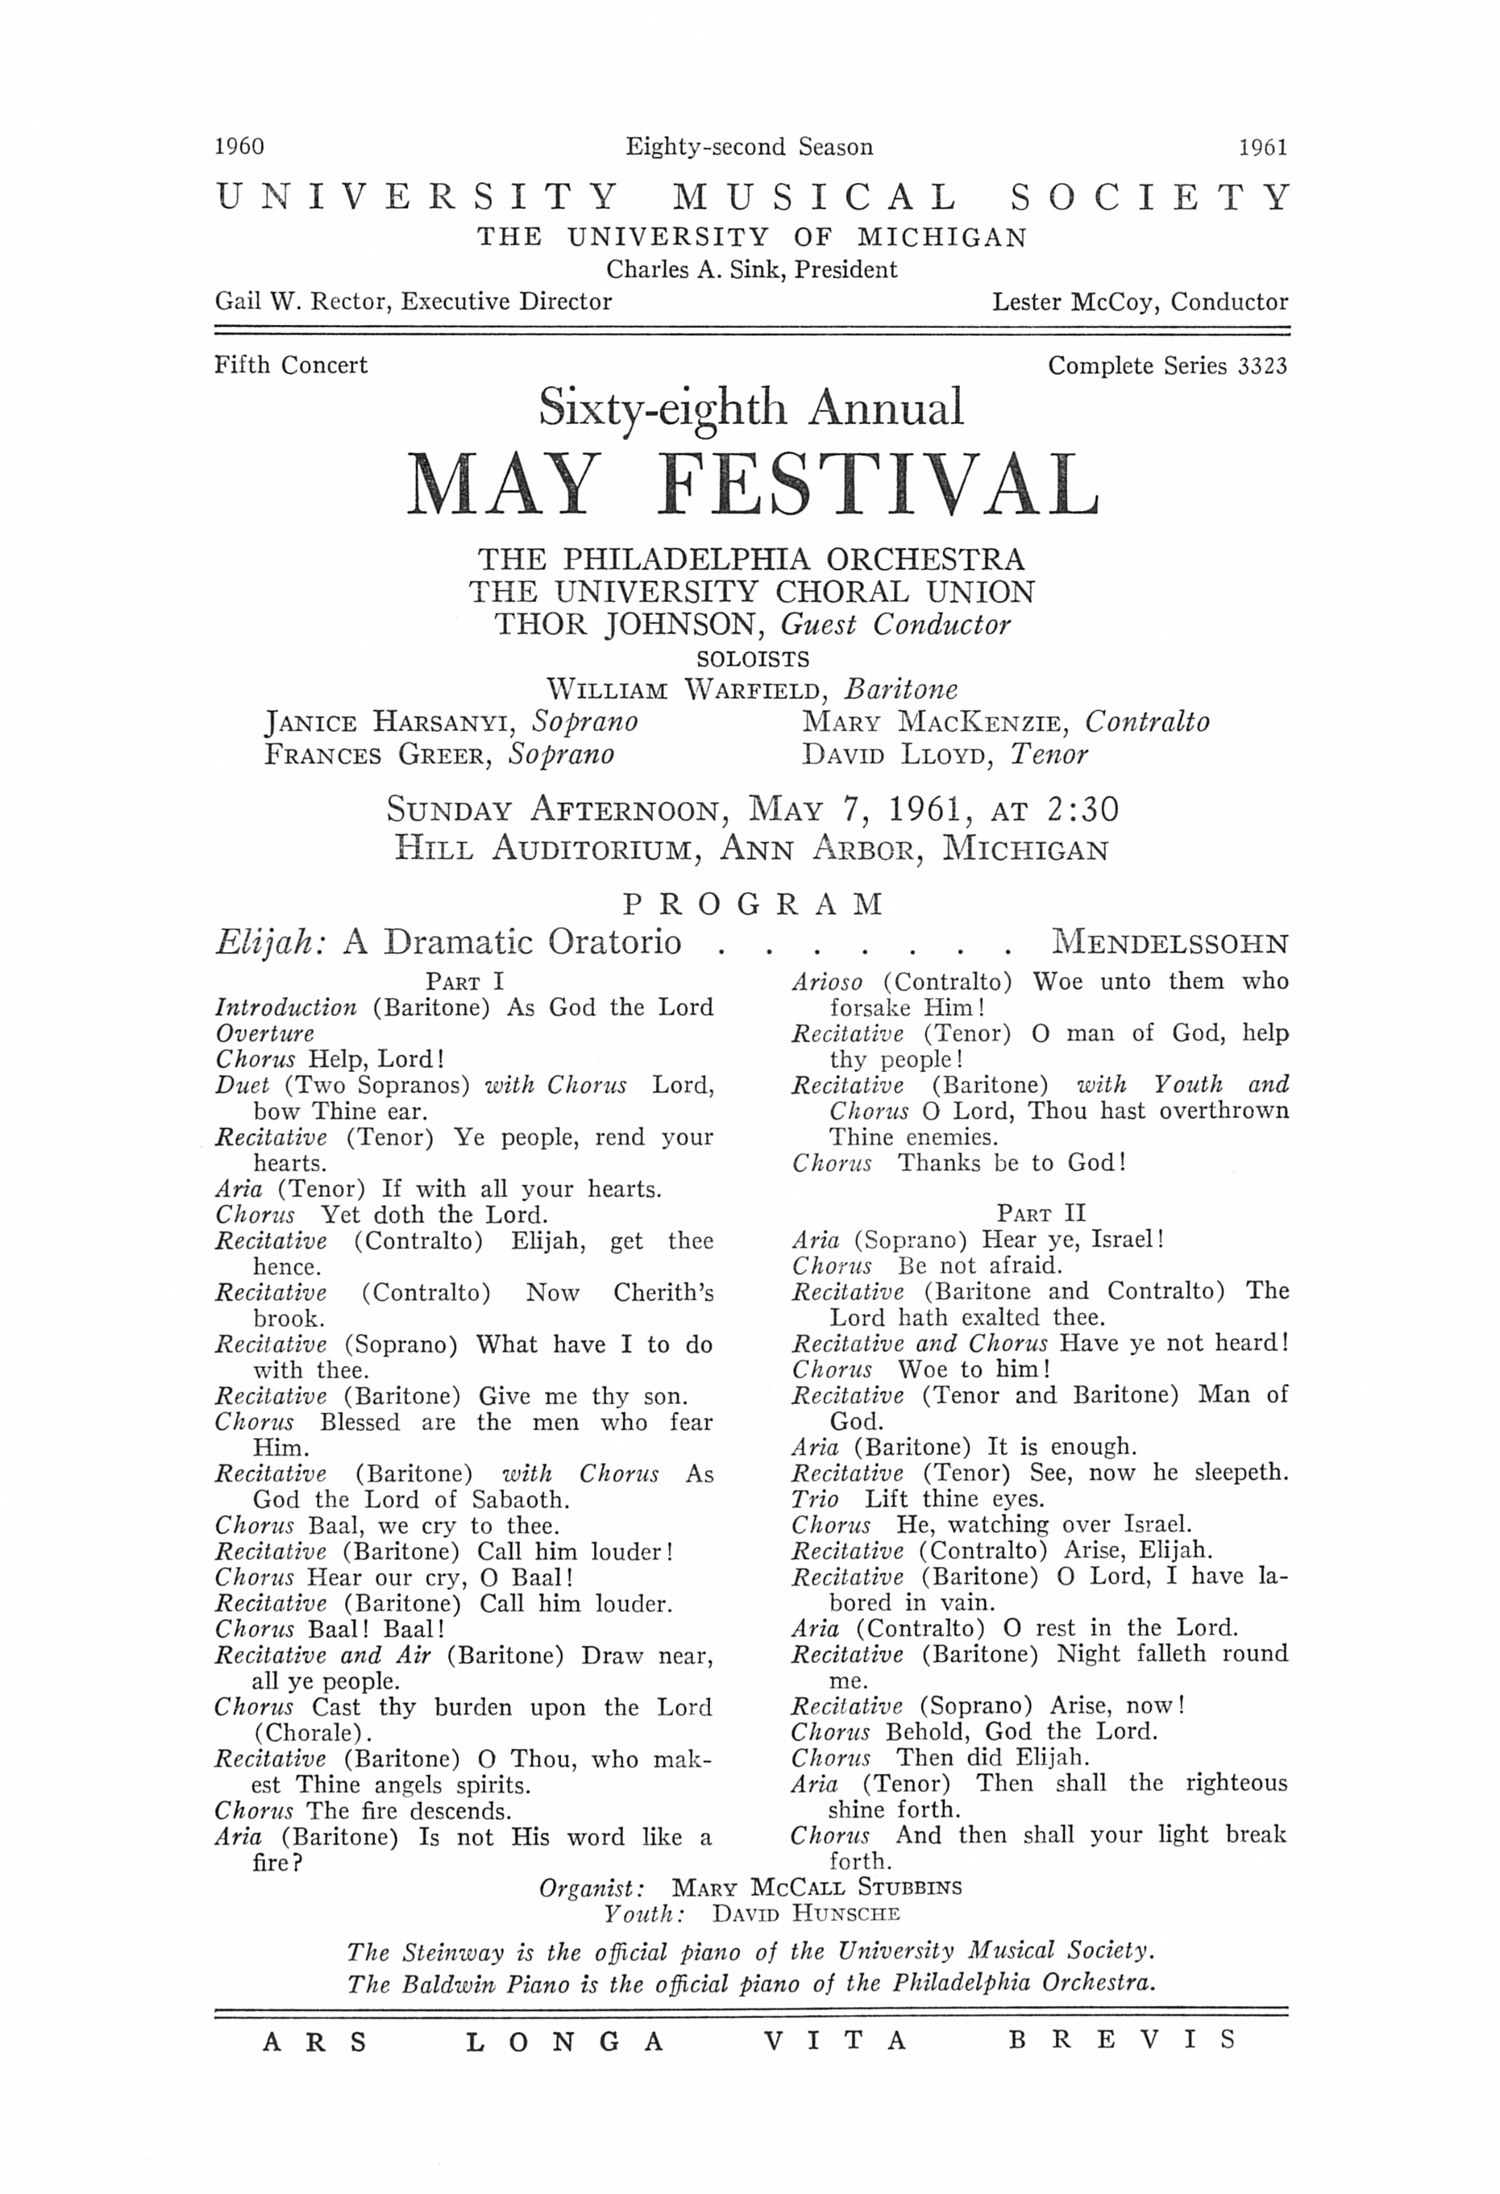 UMS Concert Program, May 7, 1961: Sixty-eighth Annual May Festival -- The Philadelphia Orchestra image